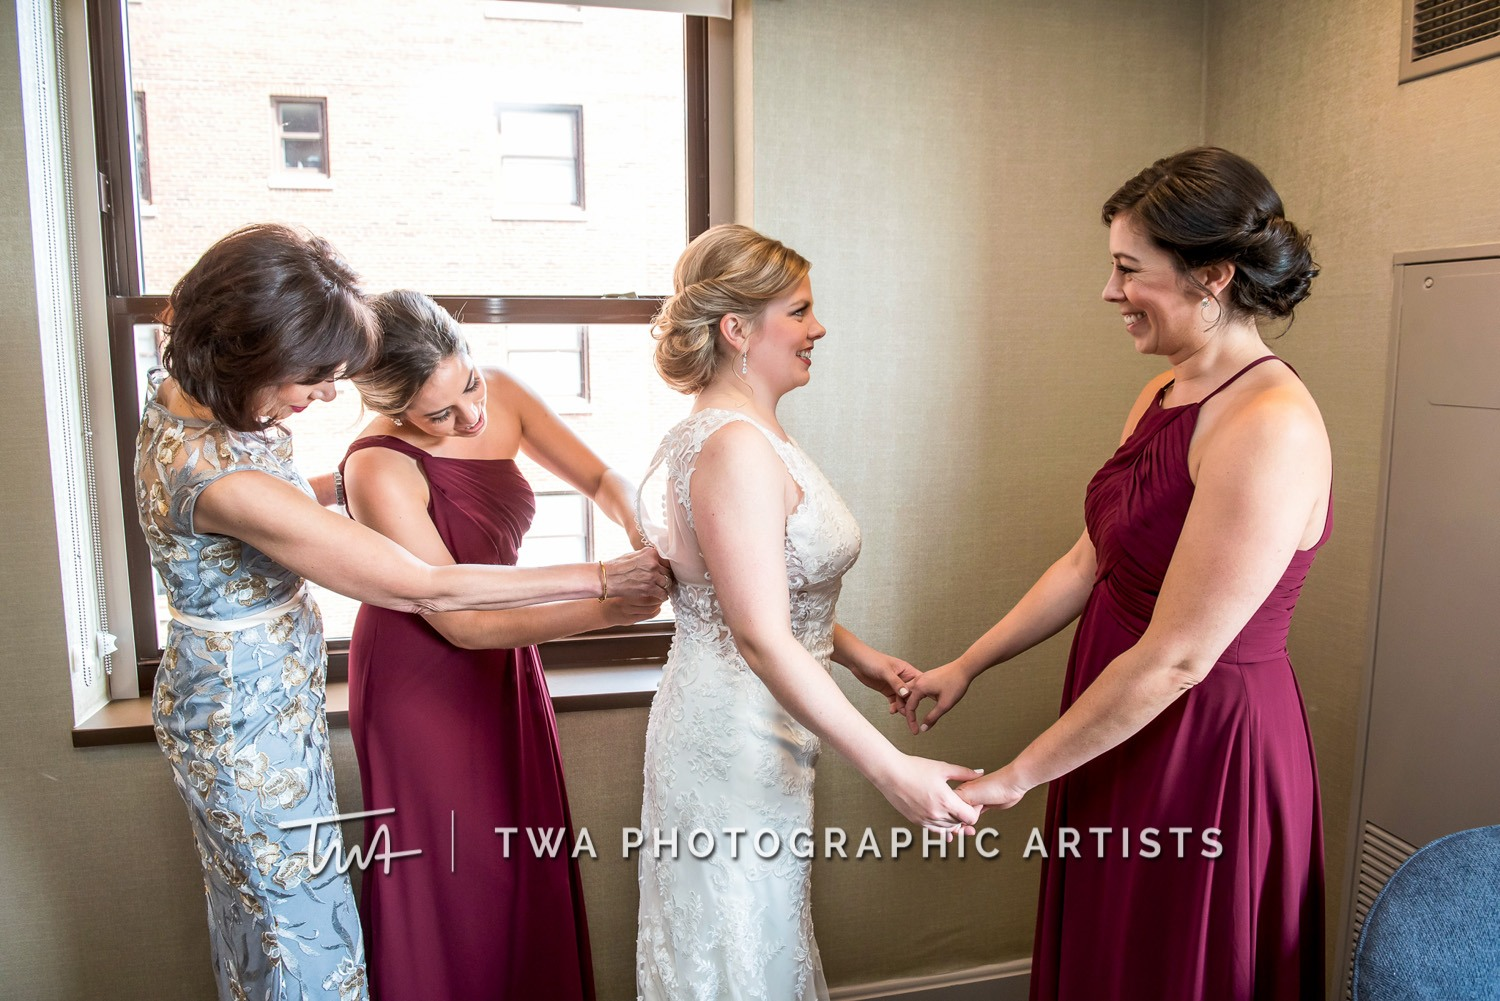 Chicago-Wedding-Photographer-TWA-Photographic-Artists-White-Pines-Banquets_Petersen_Sherman_ZZ_DL-010_0104